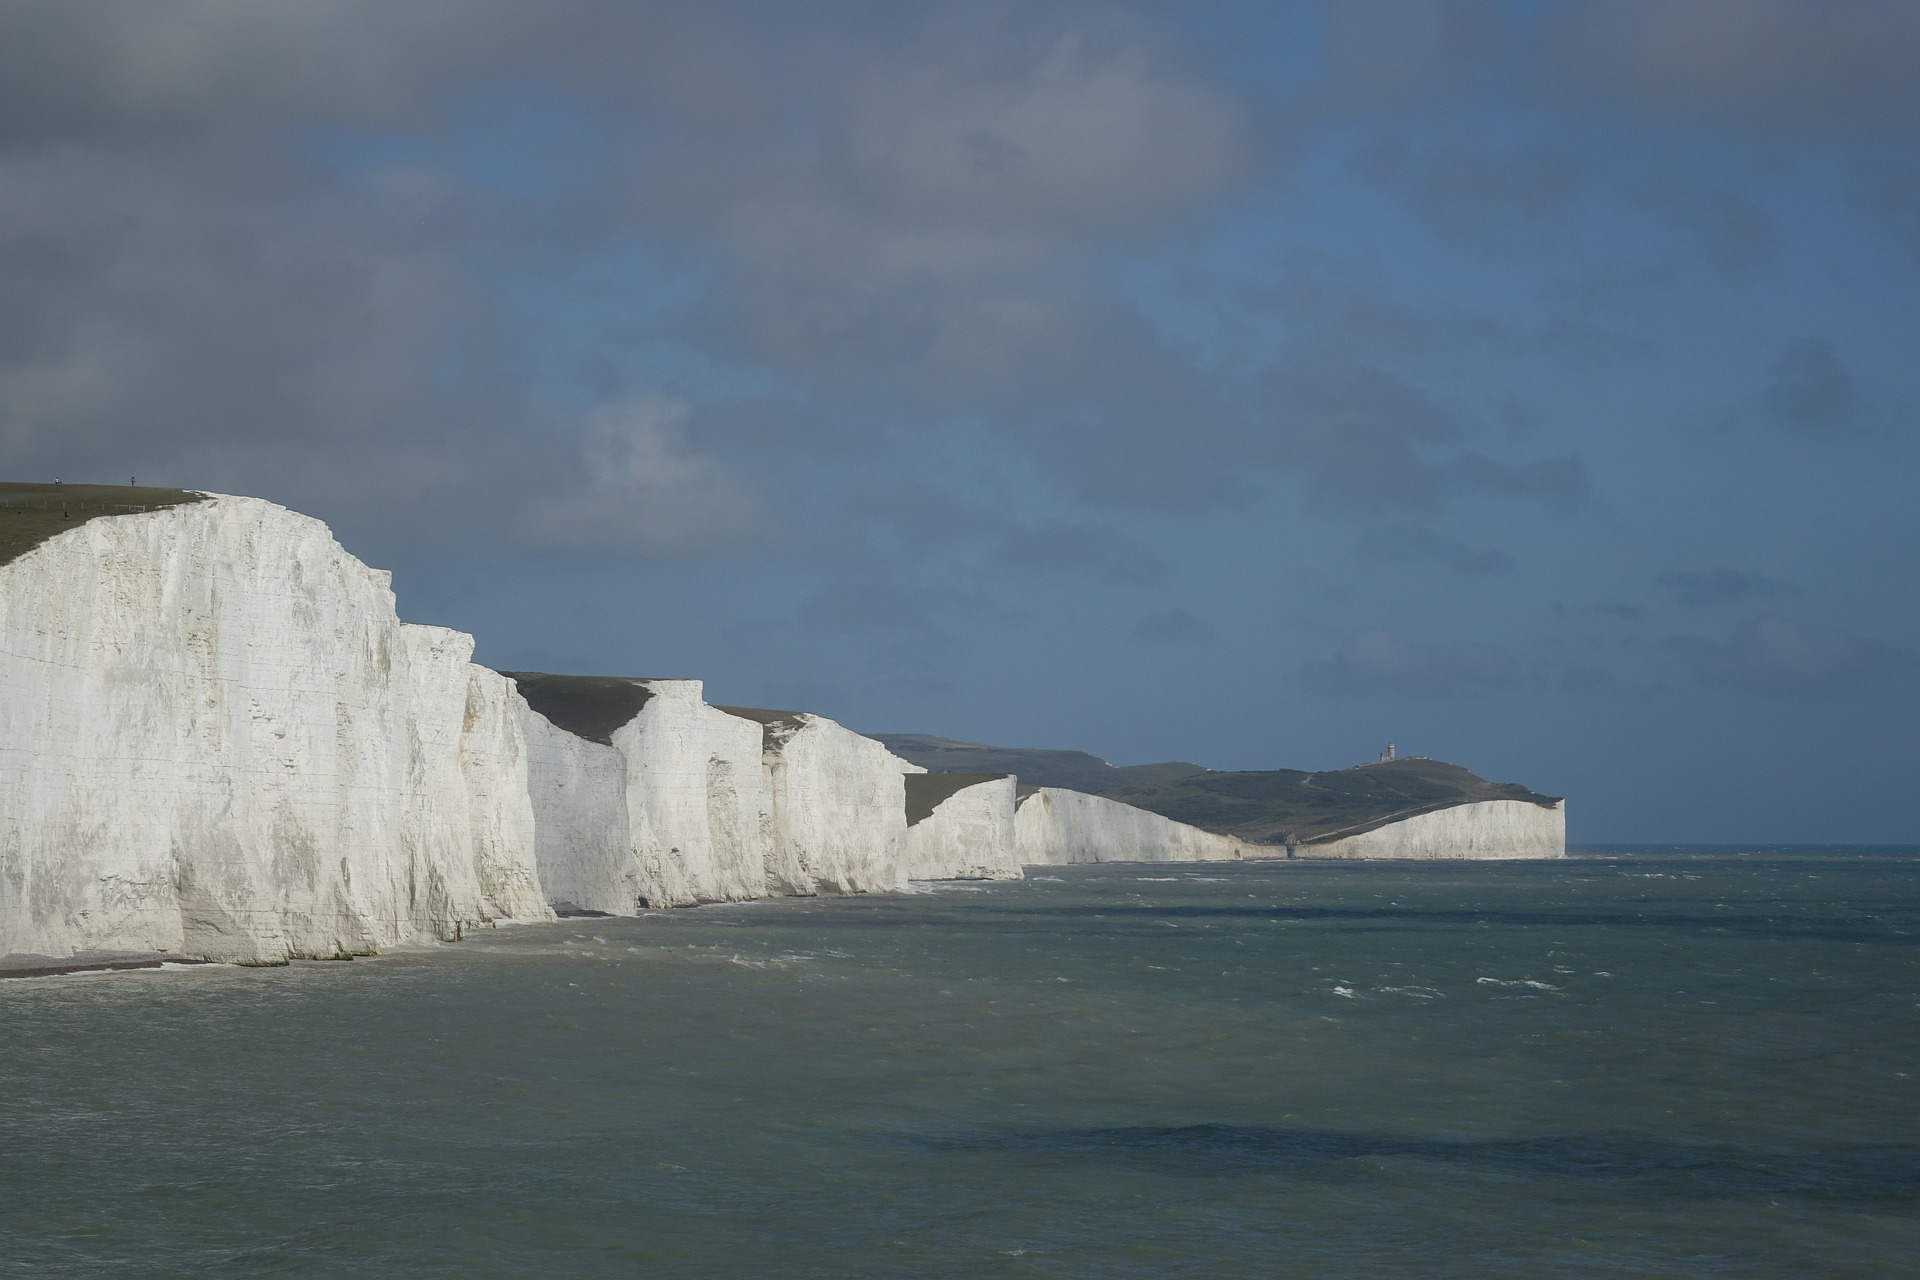 Cliffs at English Channel